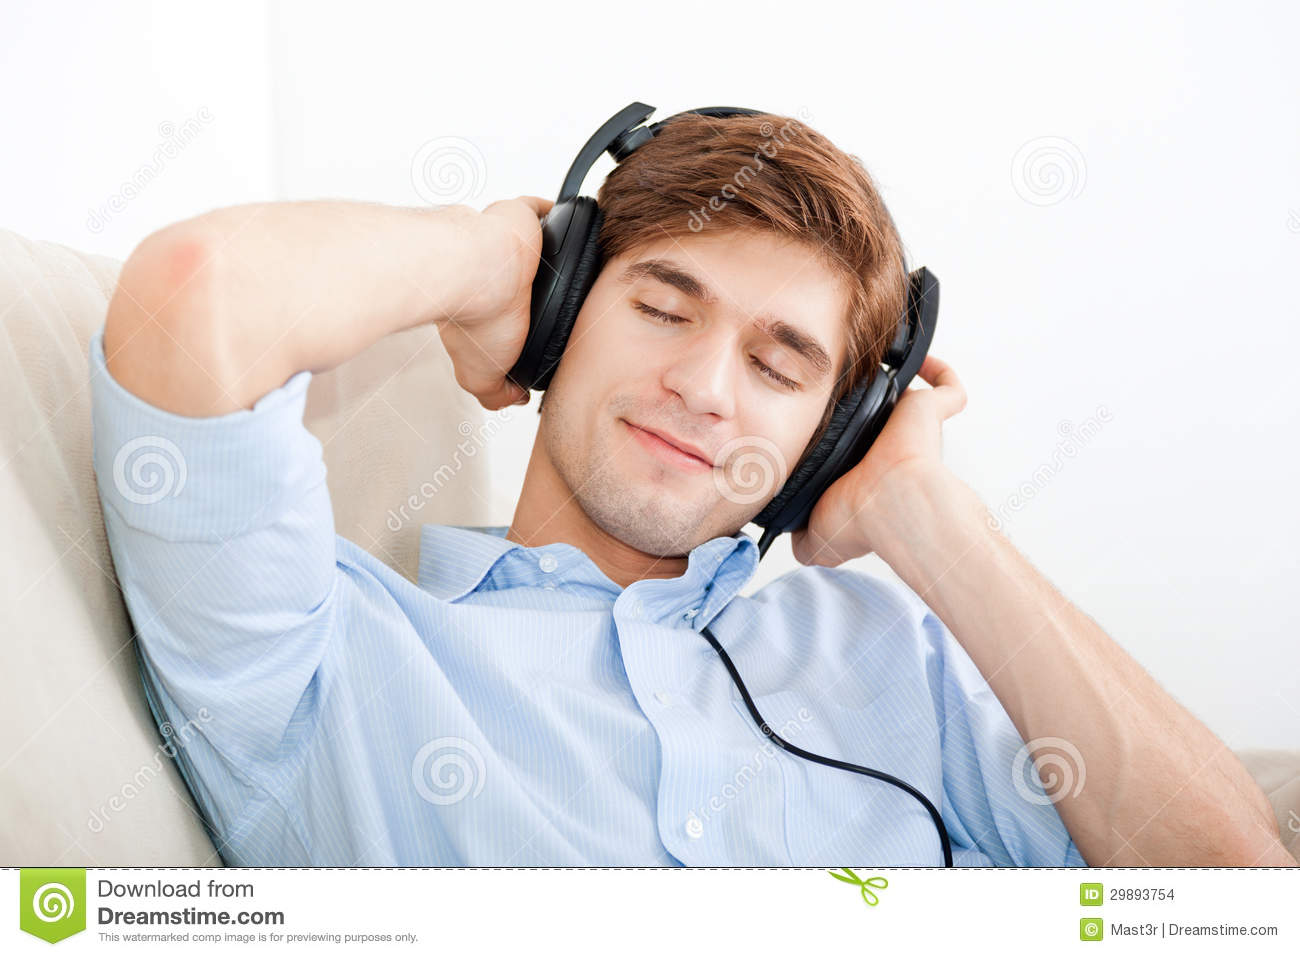 man-listening-music-headphone-sofa-home-young-handsome-guy-happy-smile-relax-listen-to-music-closed-eyes-29893754.jpg